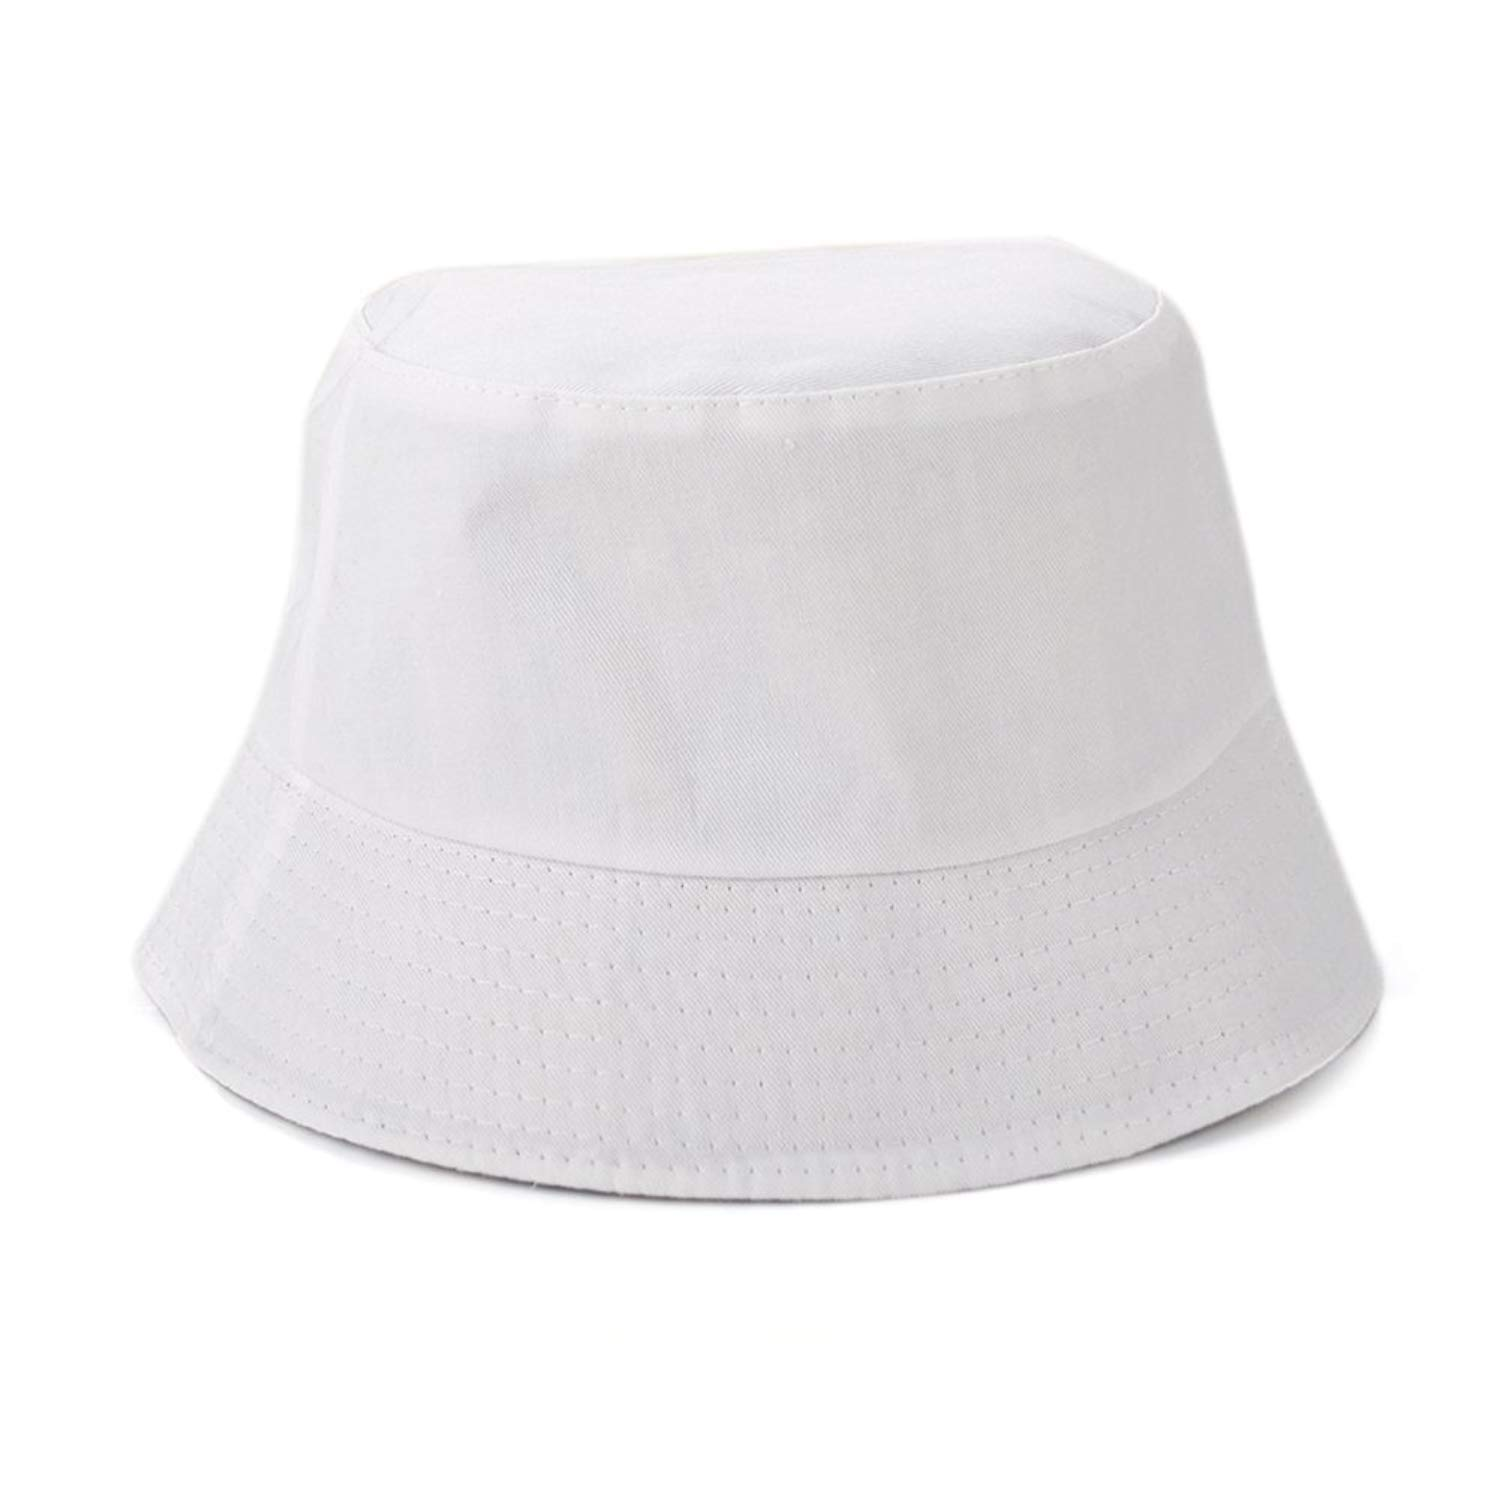 Opromo Blank Cotton Twill Bucket Hat Fishing Hunting Hat, One Size Fits All